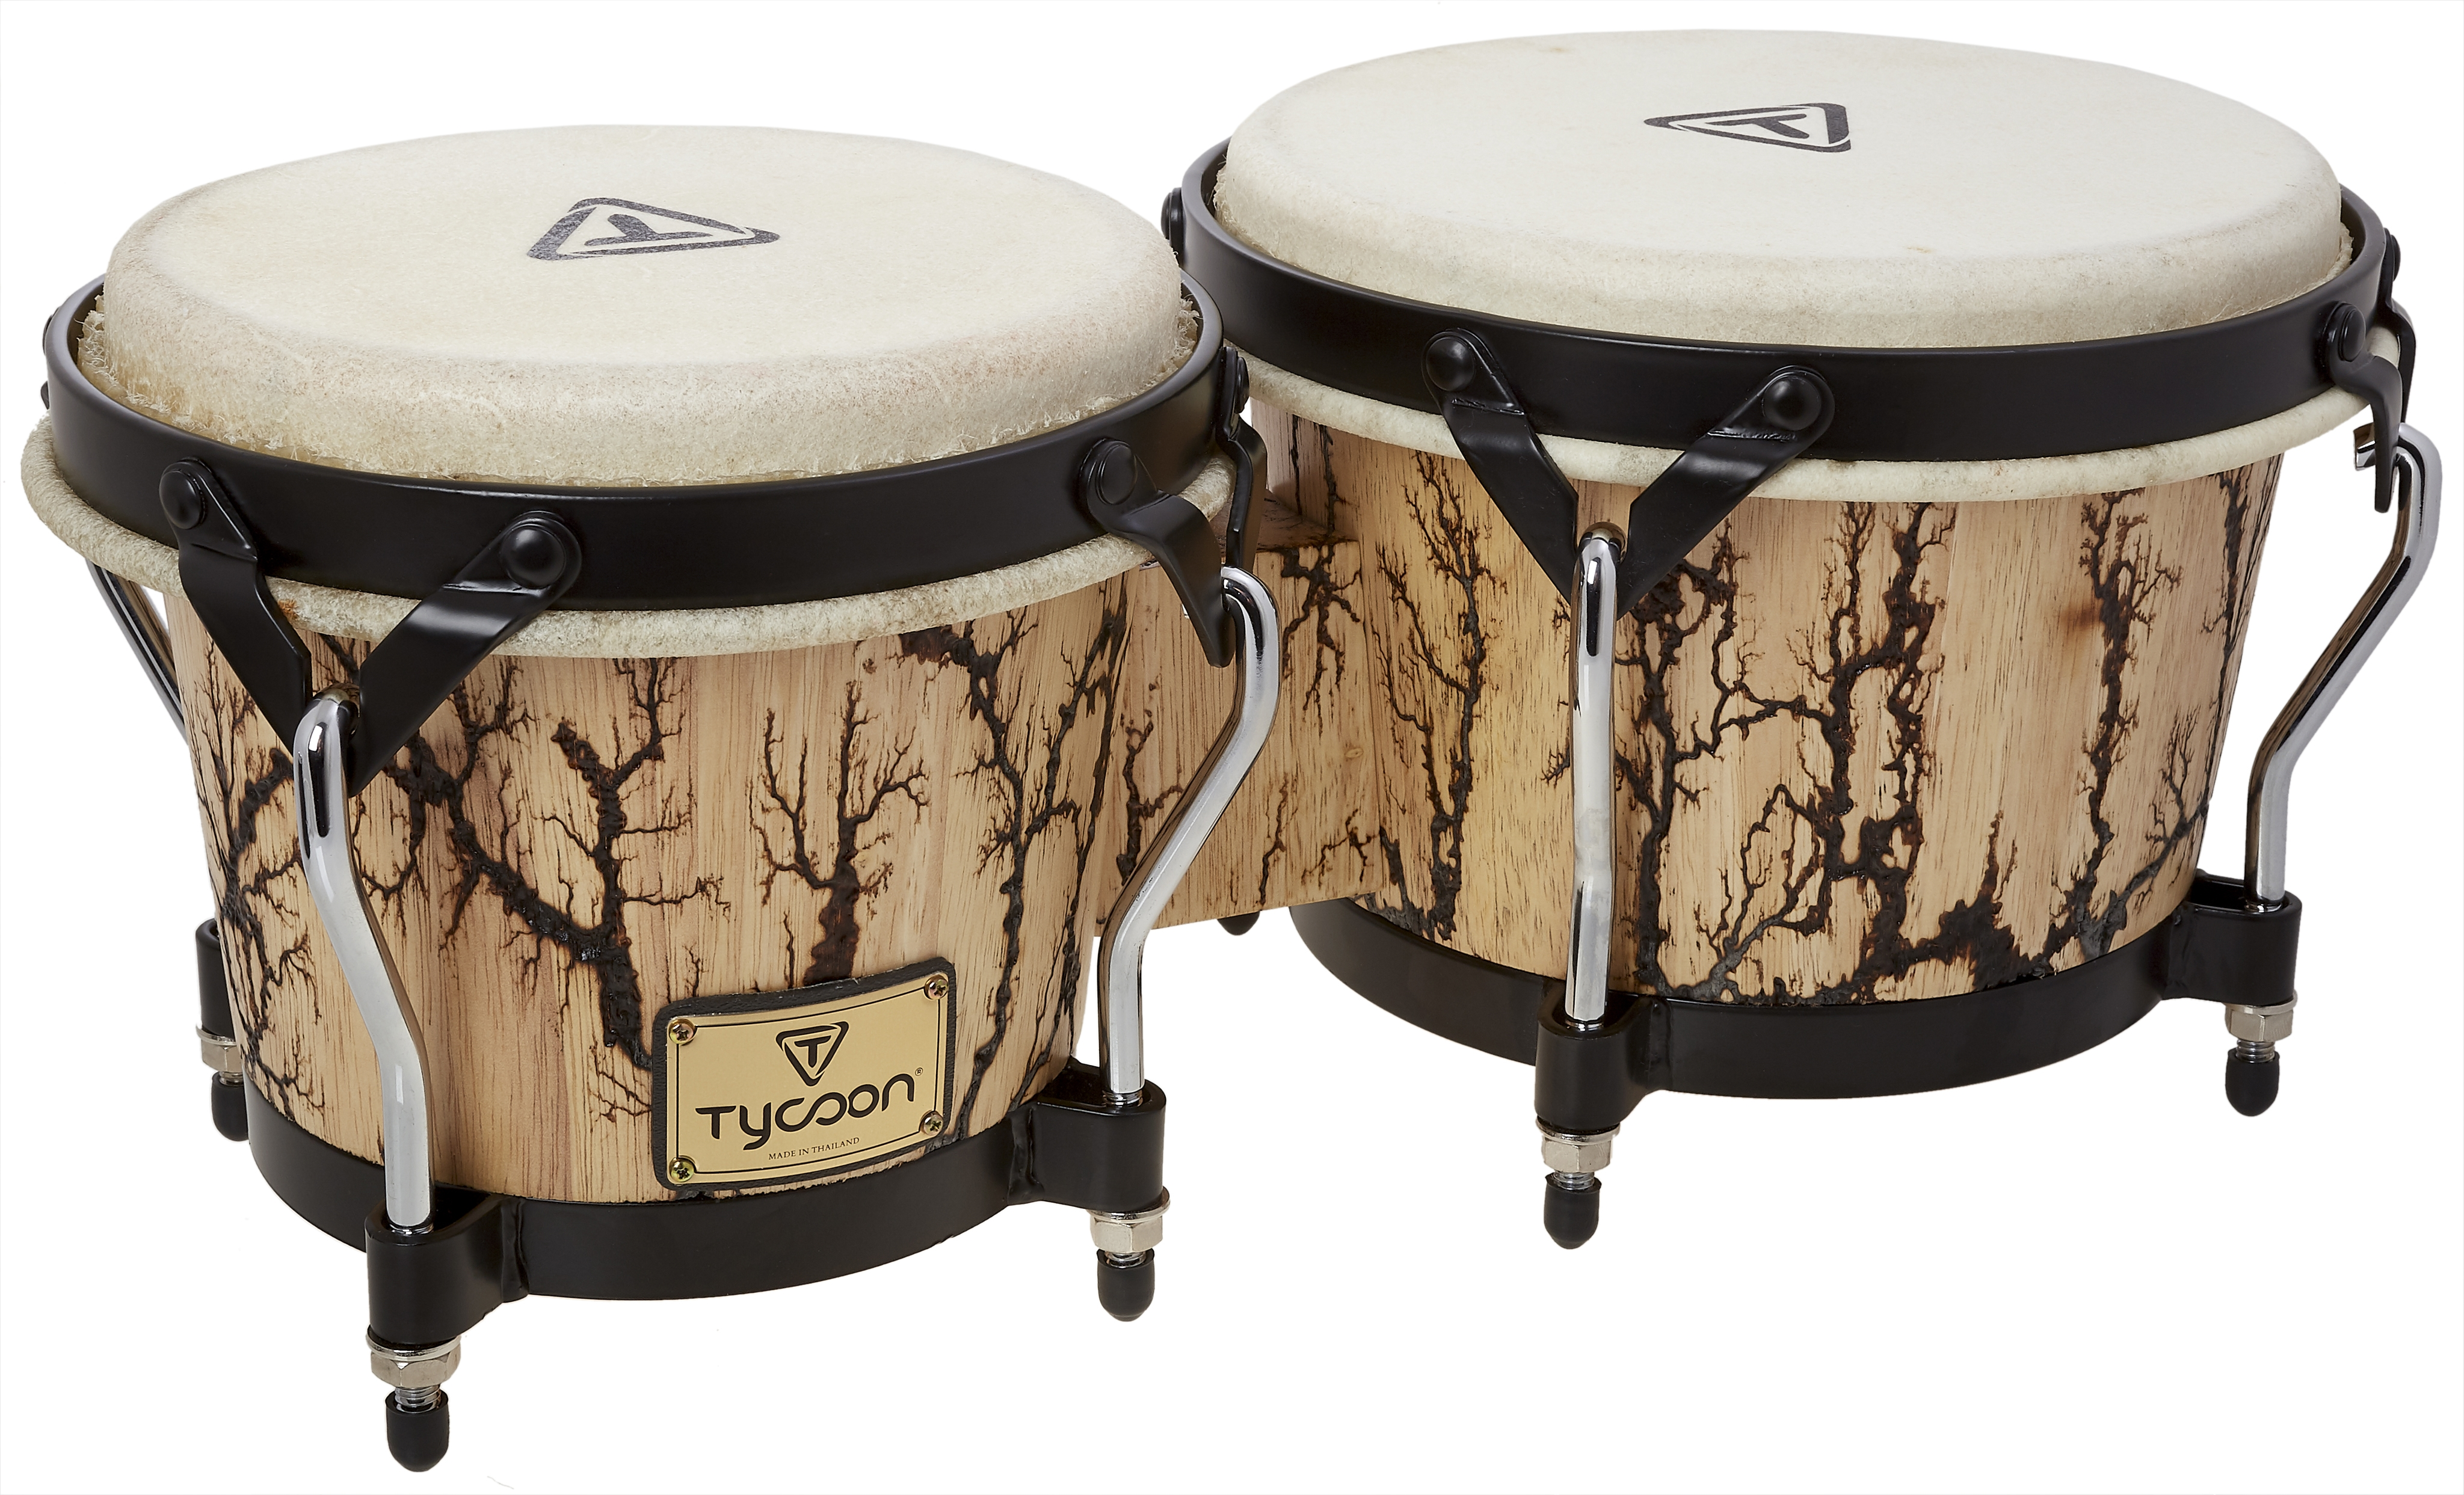 TYCOON STBS-B WI Supremo Select Willow Series Bongo